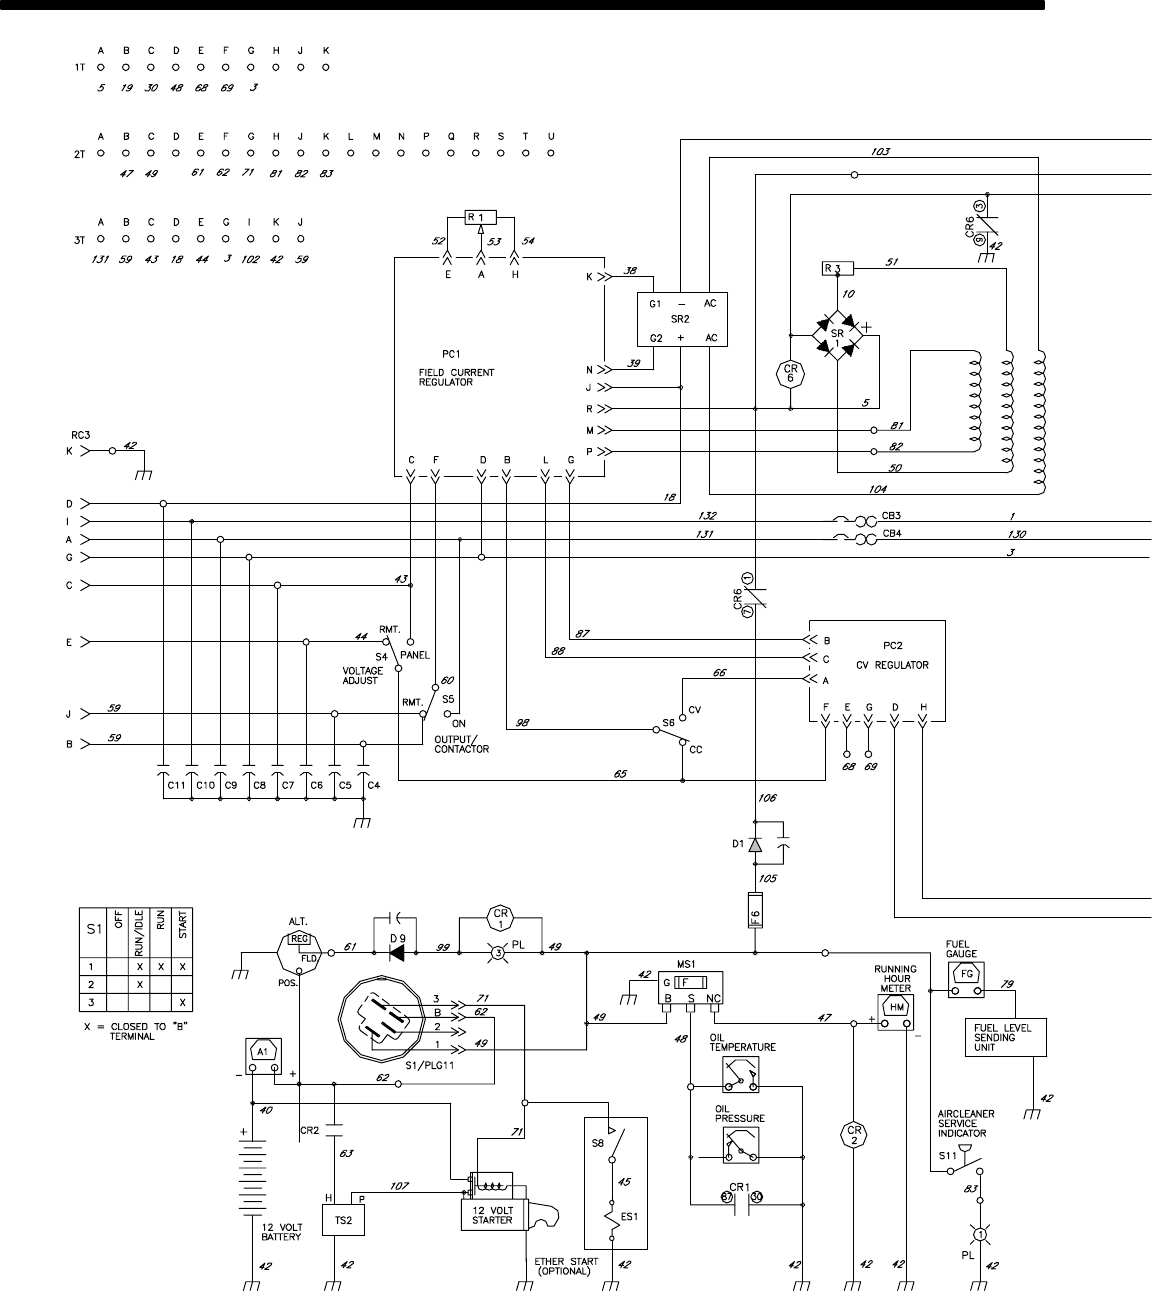 Miller Electric Big Blue 600d Users Manual Maxstar 200 Wiring Diagram Om 481 Page 30